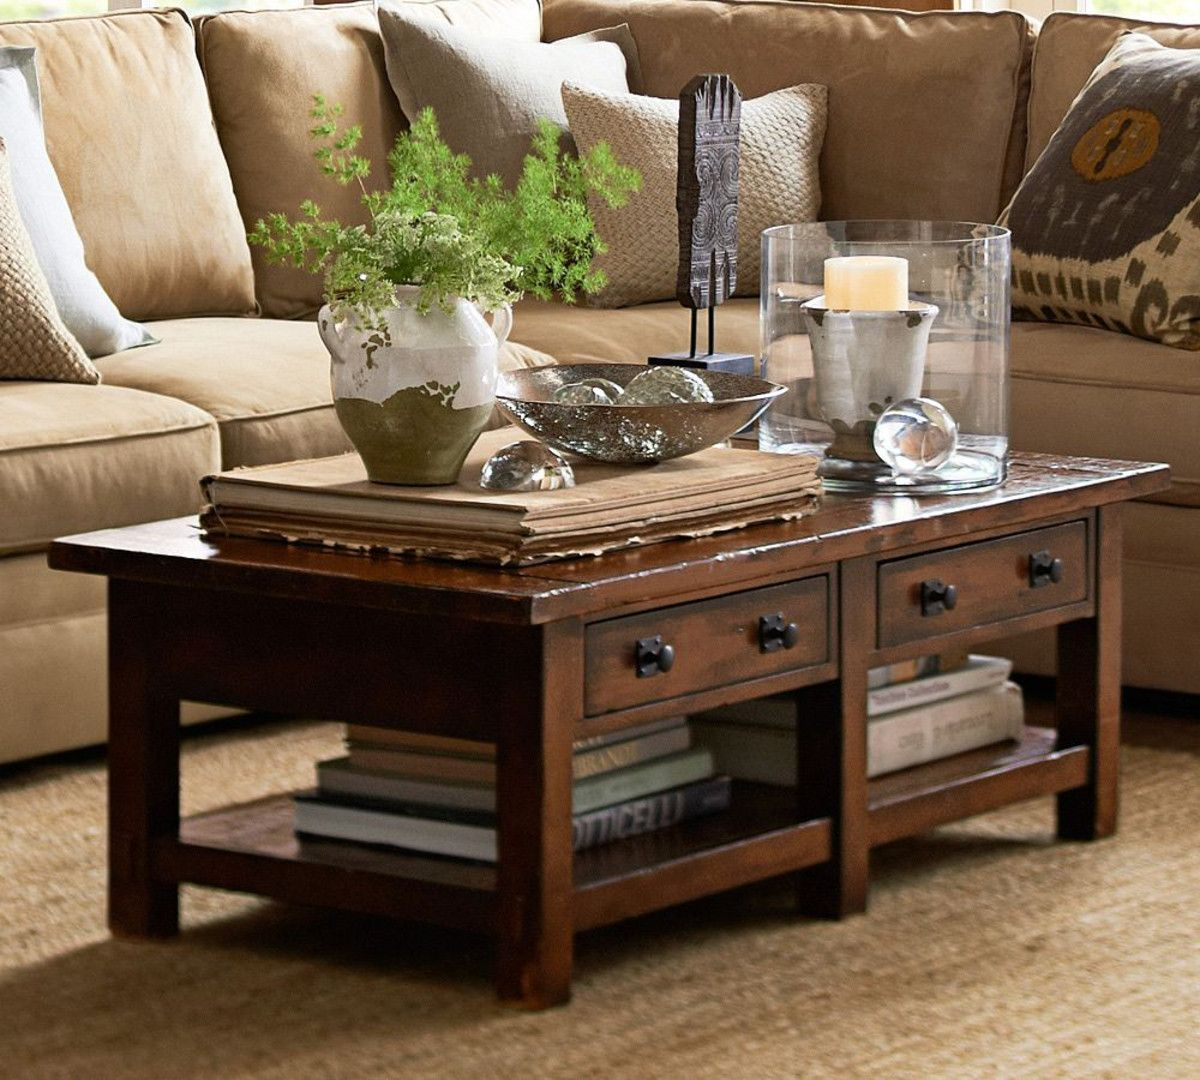 Benchwright coffee table rustic mahogany stain pottery barn au ideas for the house Coffee table decorating ideas